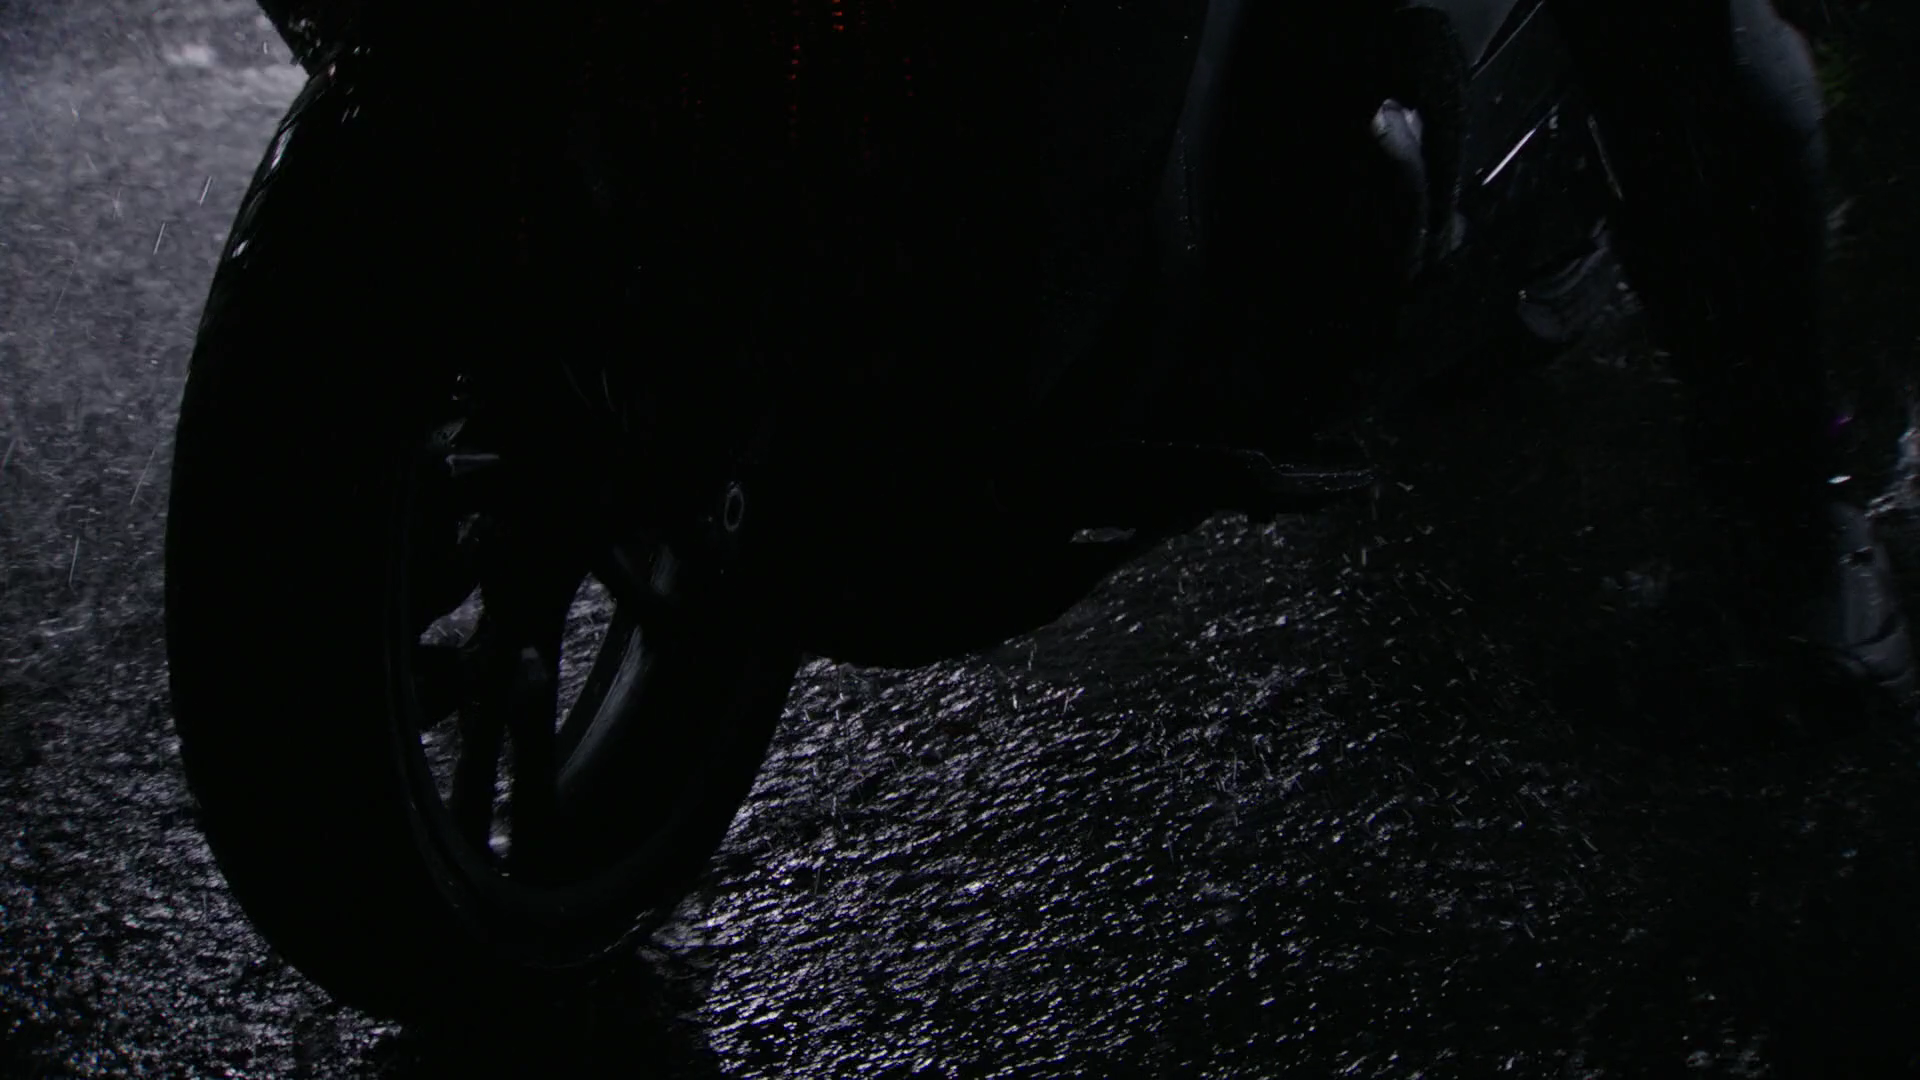 http://img4.wikia.nocookie.net/__cb20141012080833/kamenrider/images/0/03/First_Drive_Bike.png